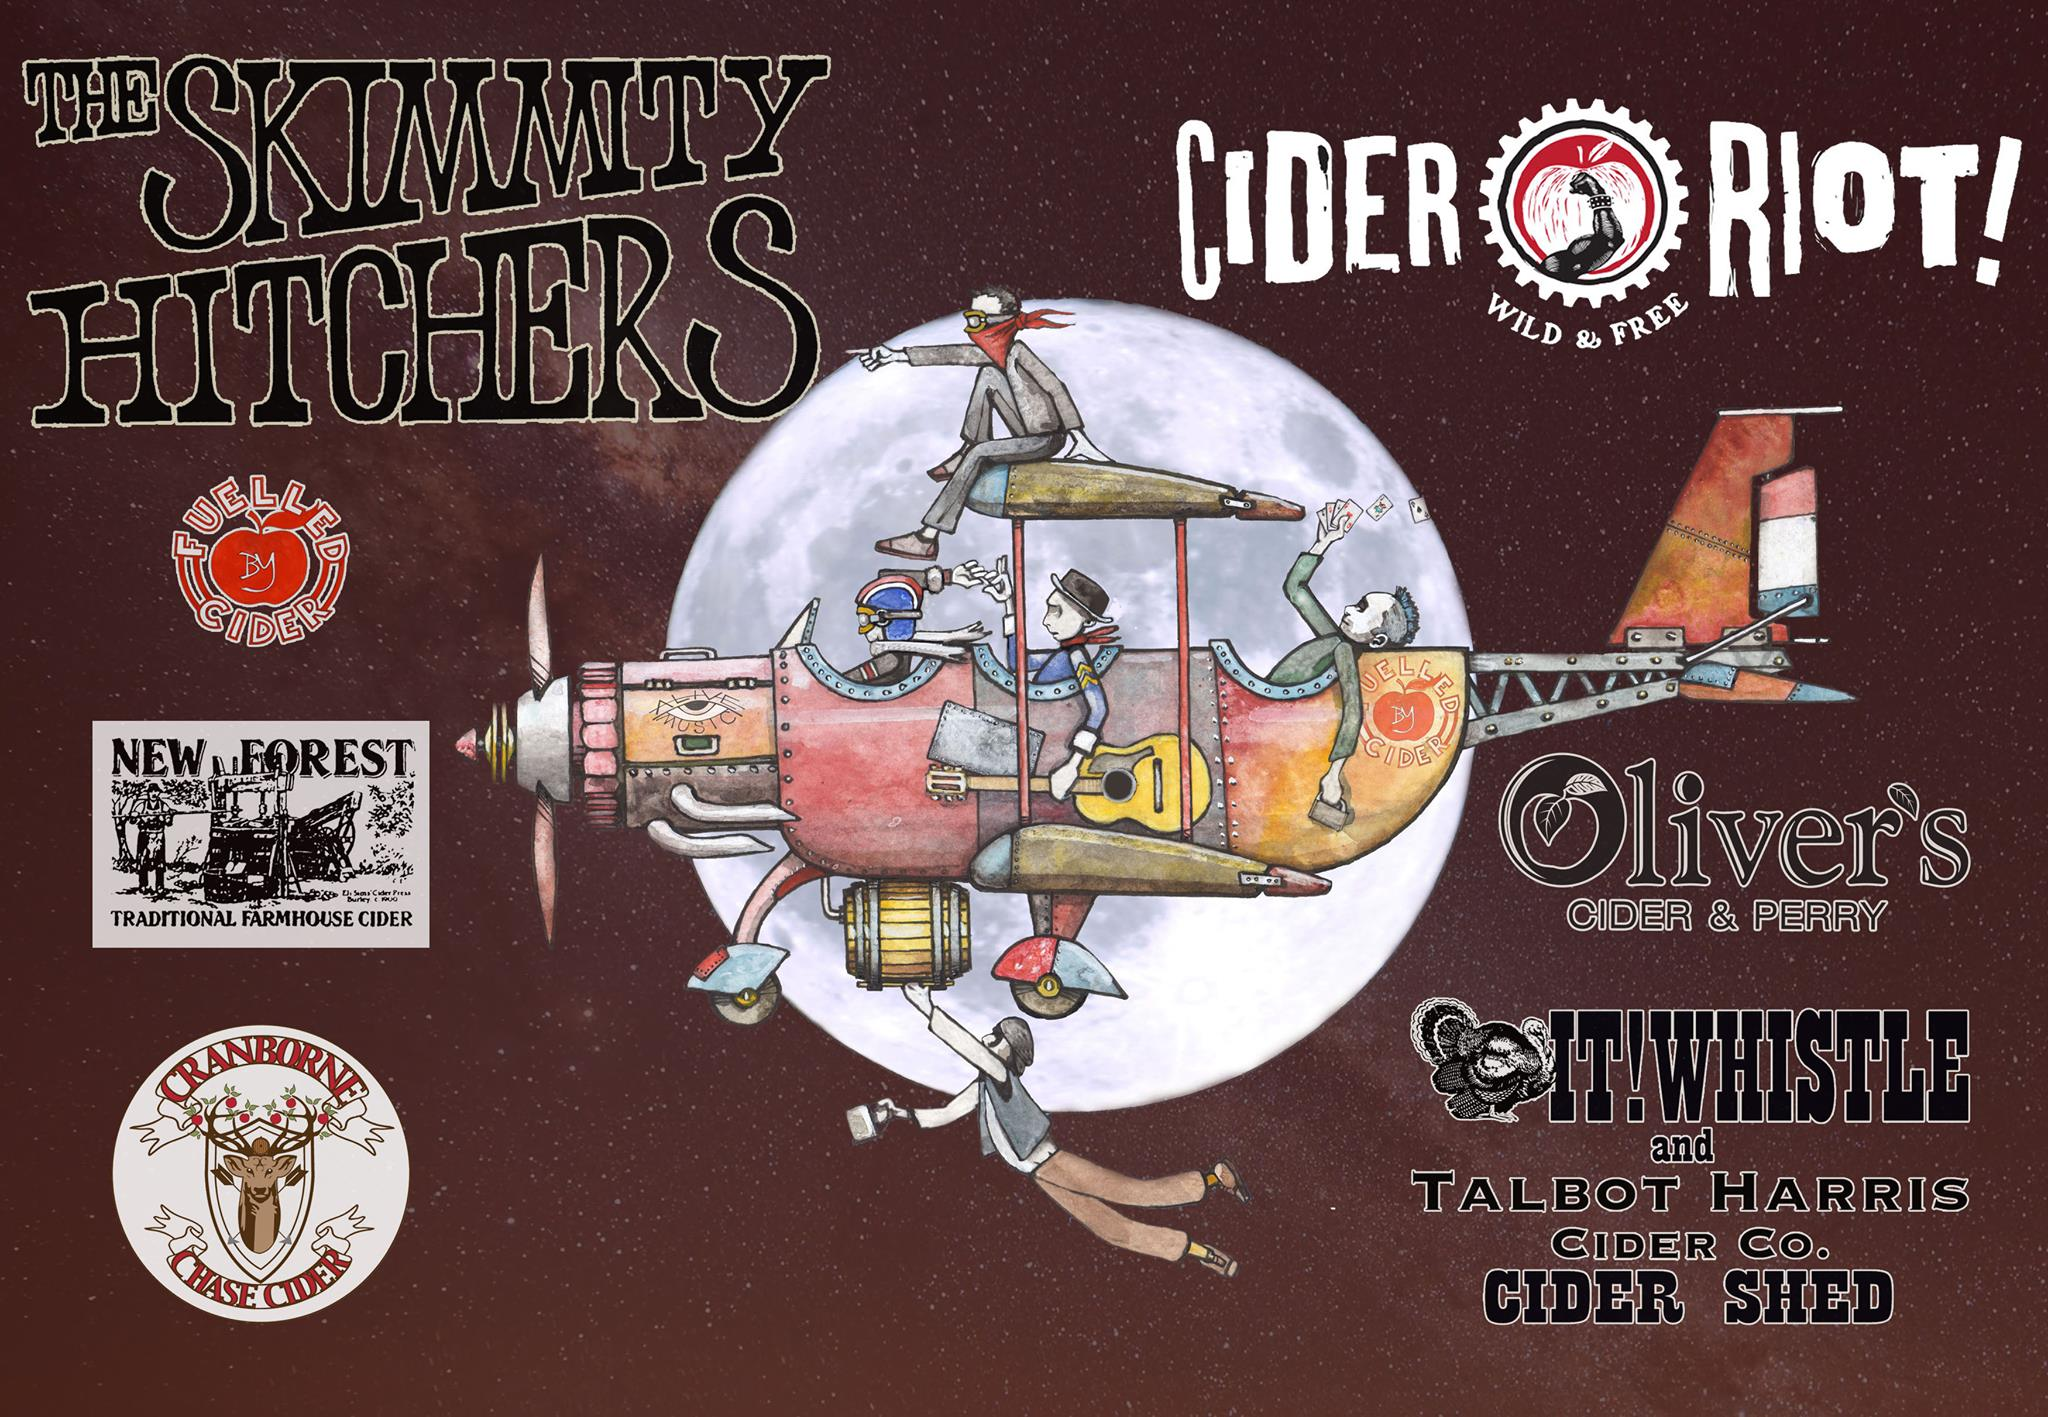 The Skimmity Hitchers Live at Cider Riot!